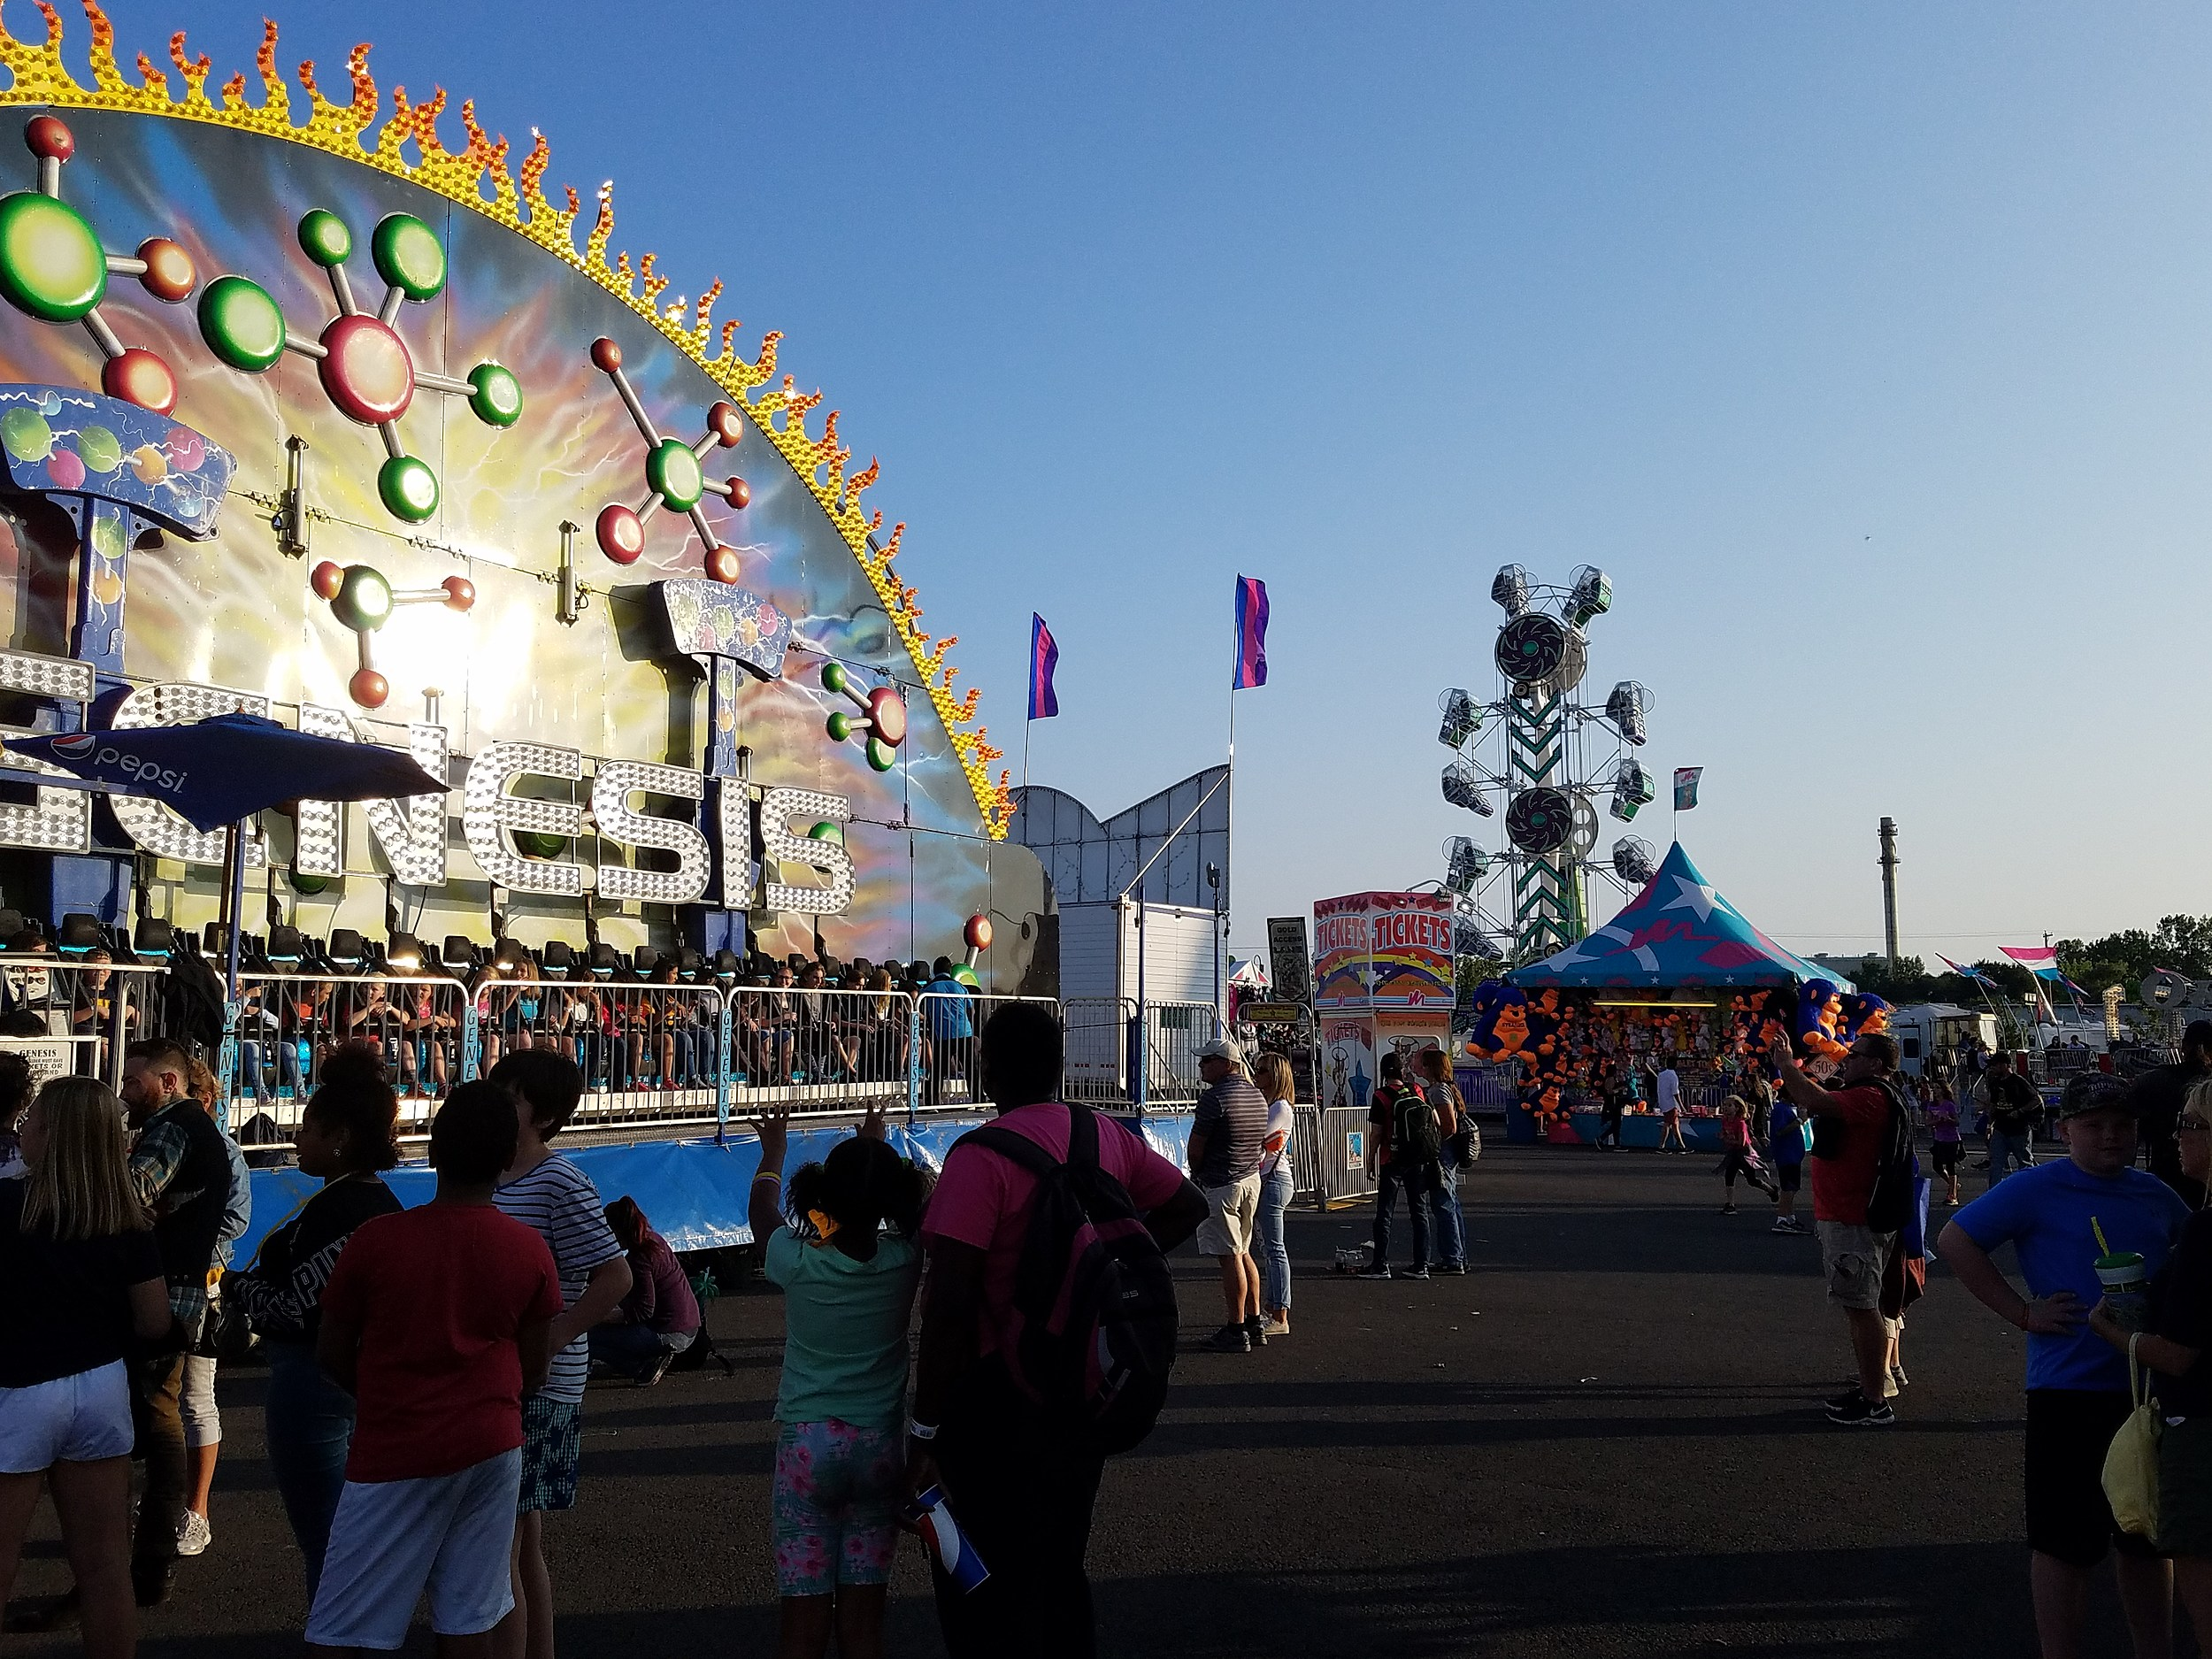 It's Broome County Fair Week